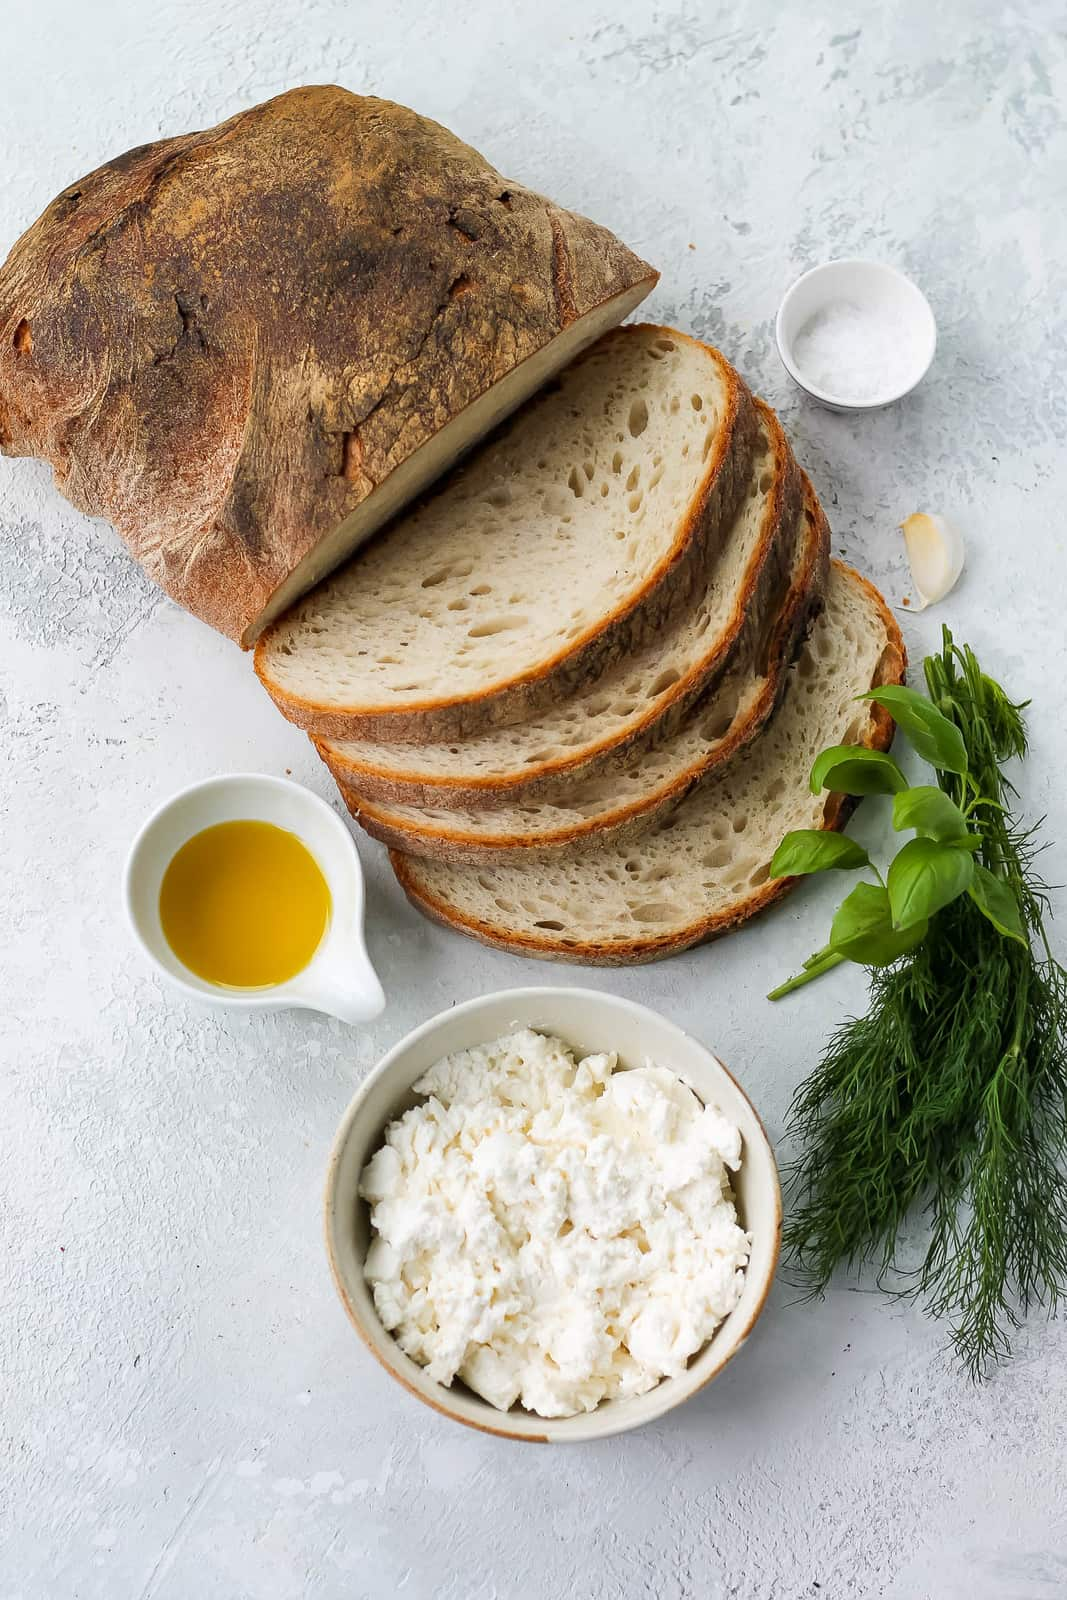 a loaf of sliced sourdough, a bowl of ricotta, some fresh herbs, olive oil, and salt on a grey background